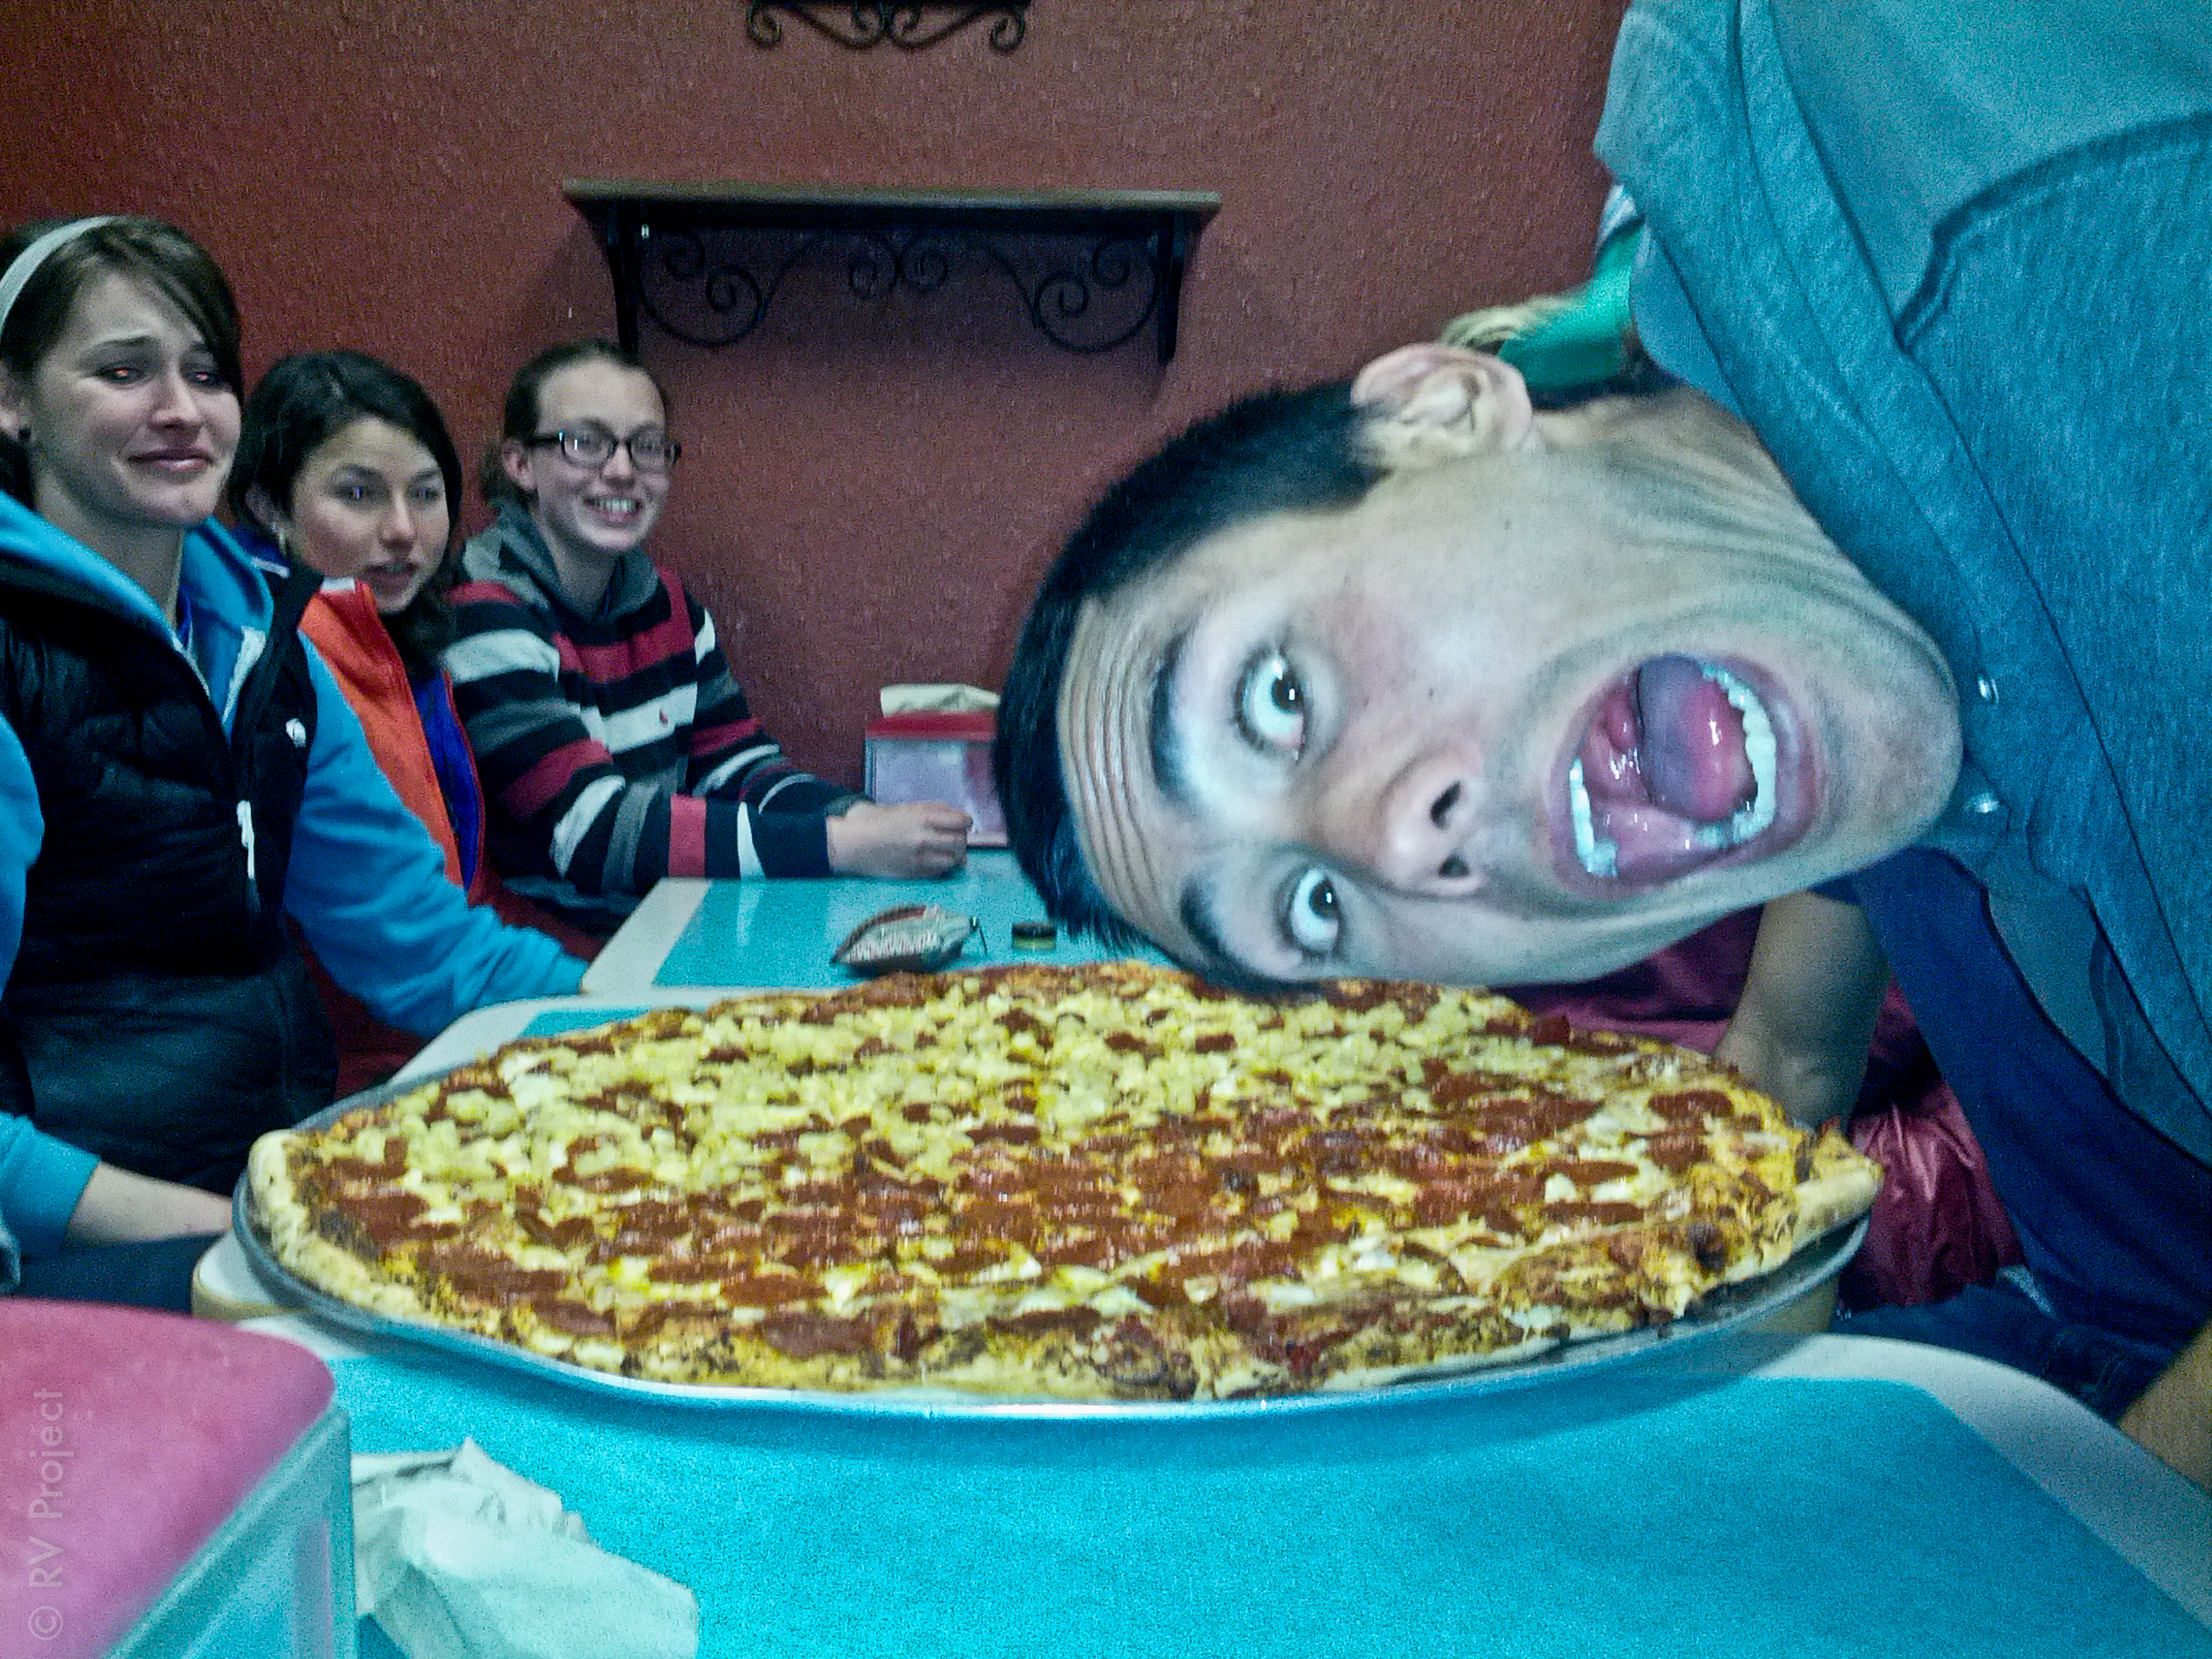 28-inch pizza. 'Nuff said. Oh, and nice photobomb, Spenser.